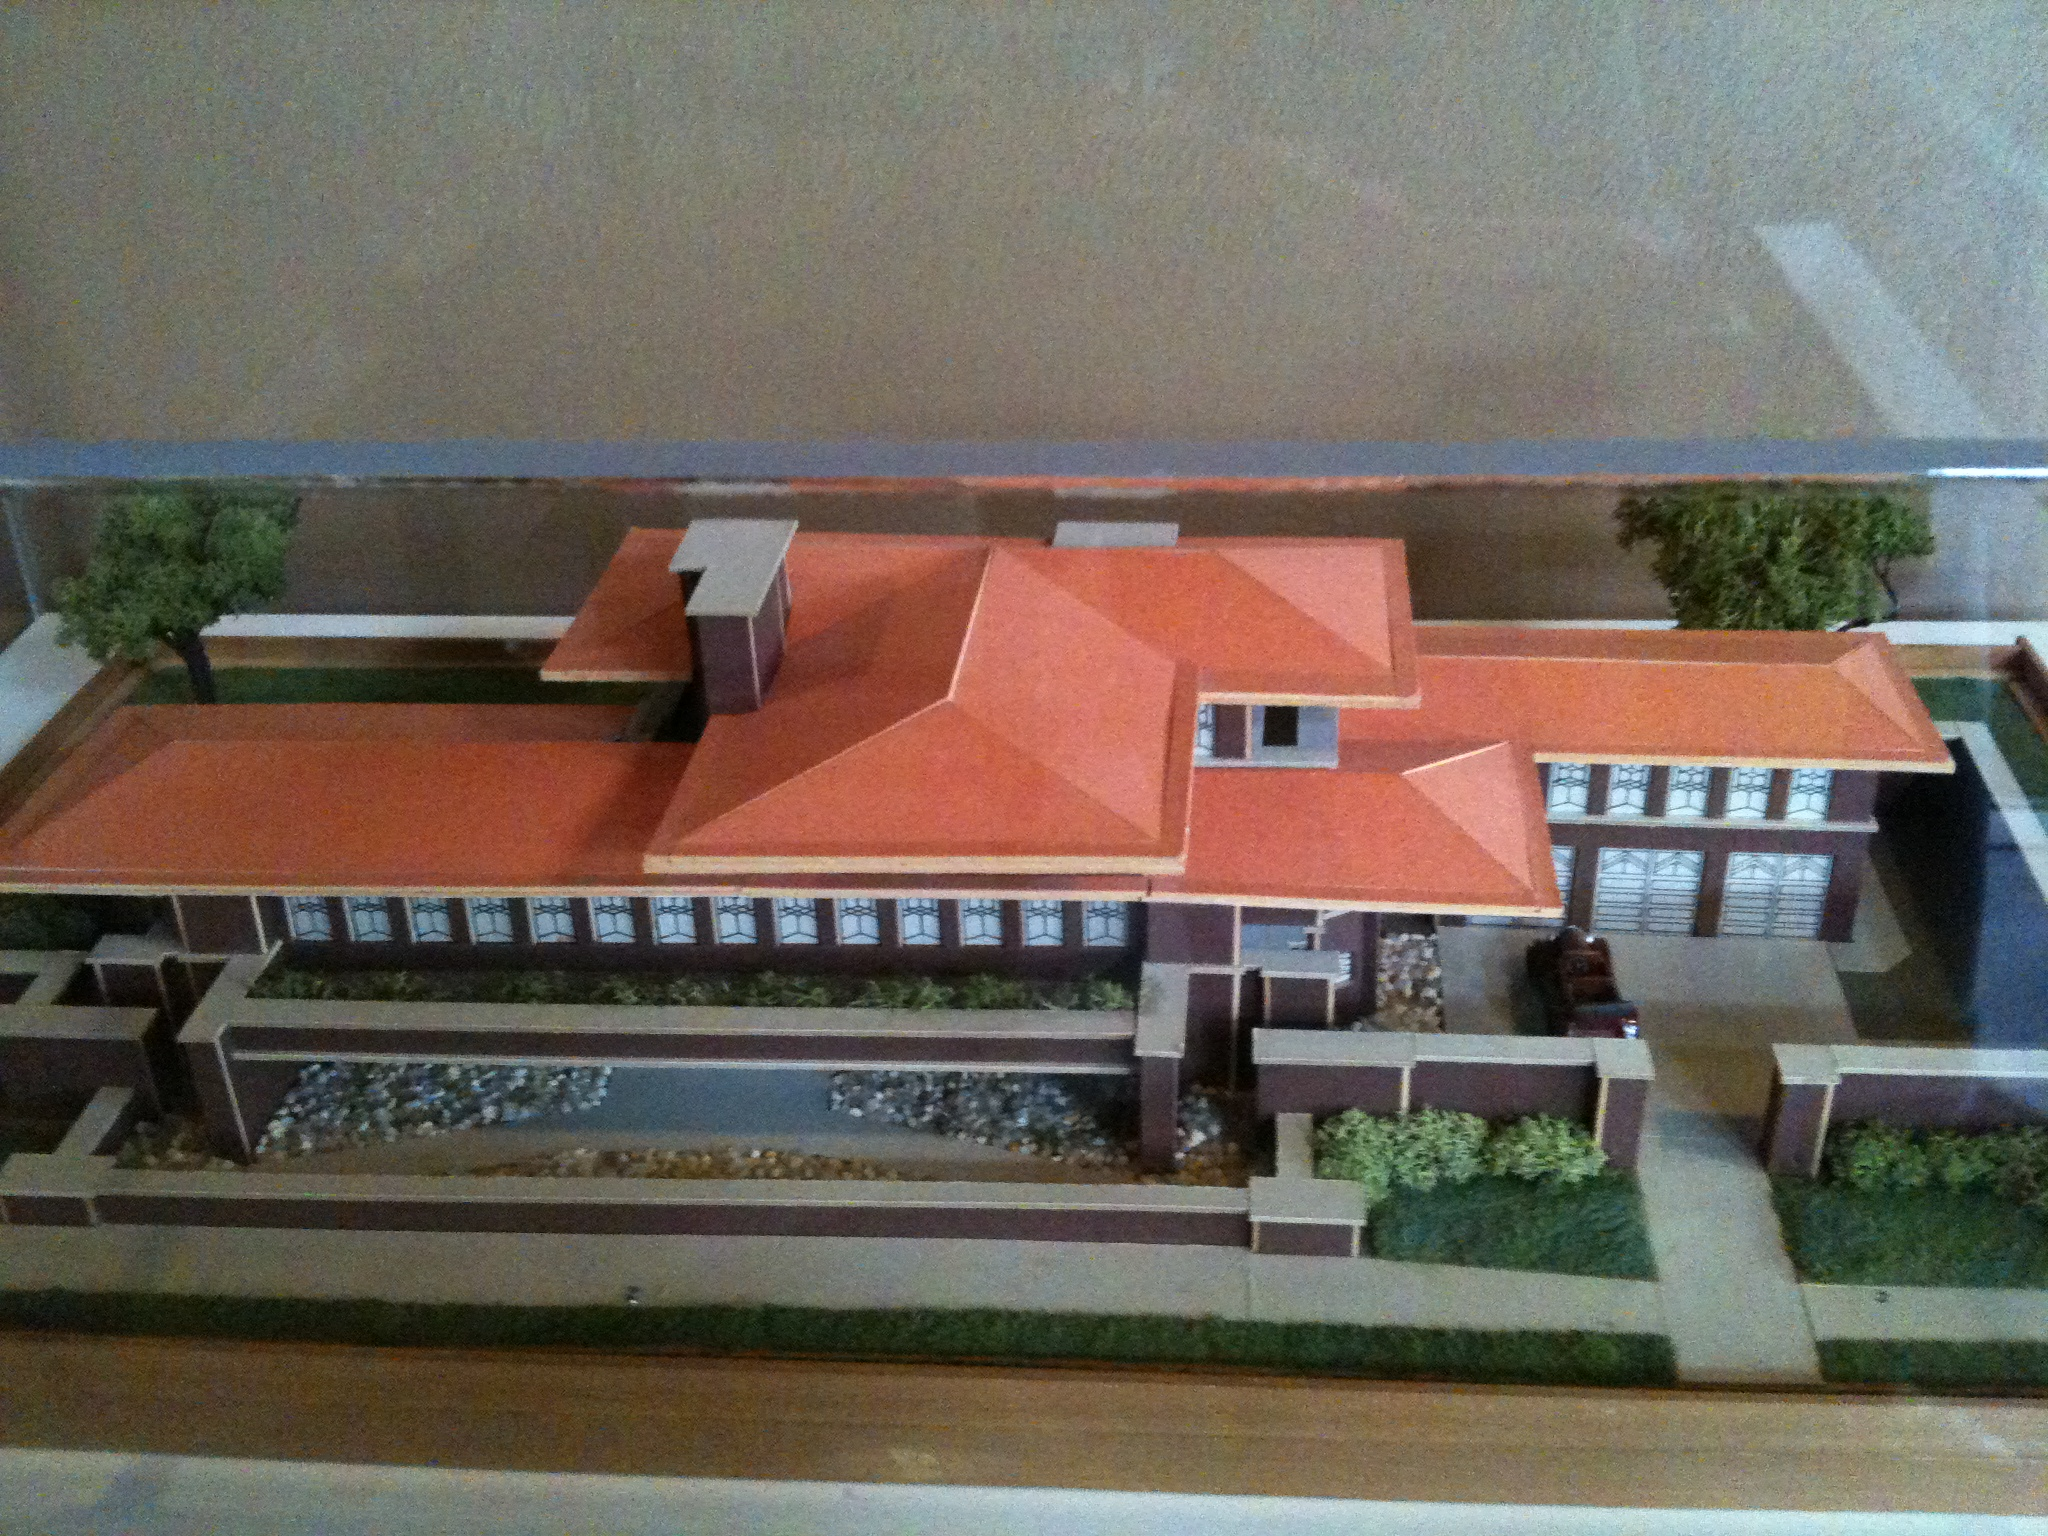 Model of the robie house